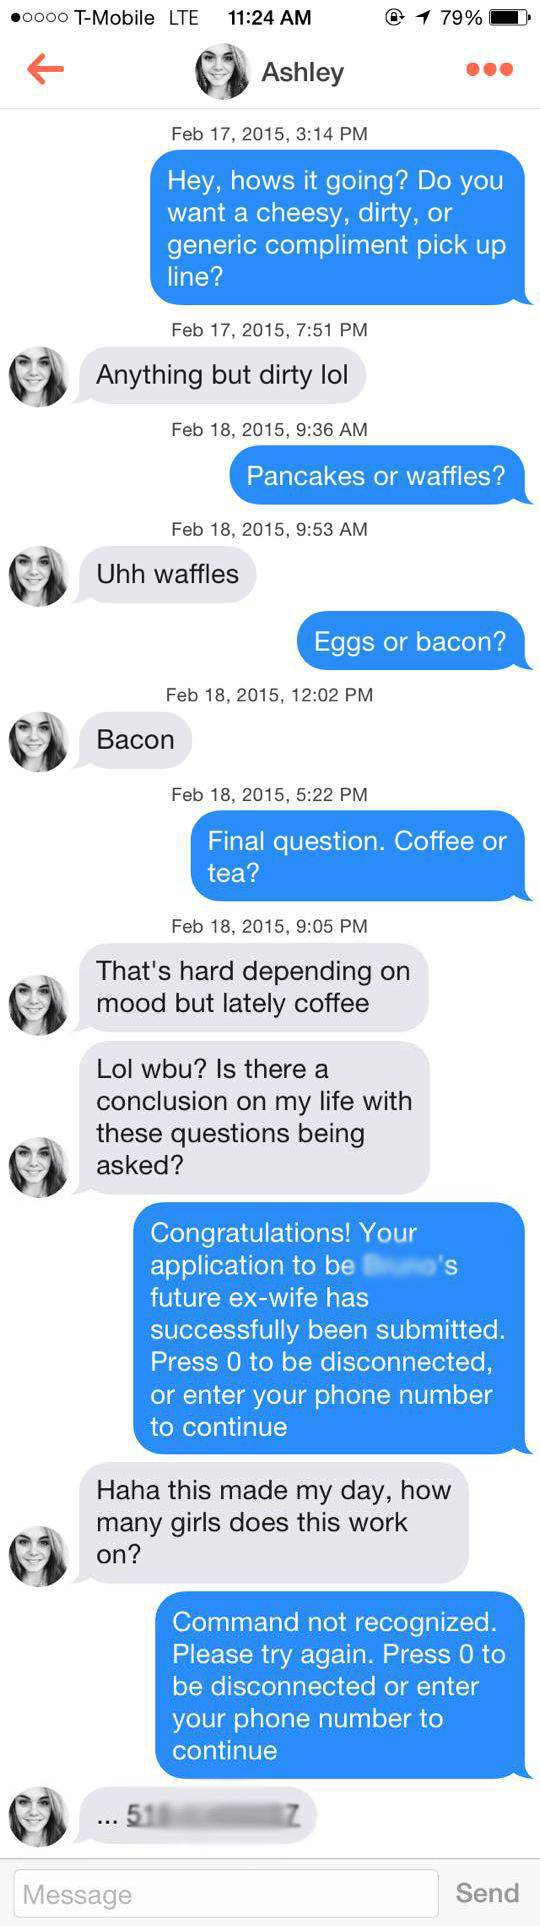 This Tinder Dude Has Figured Out the Perfect Way to Pick Up Chicks